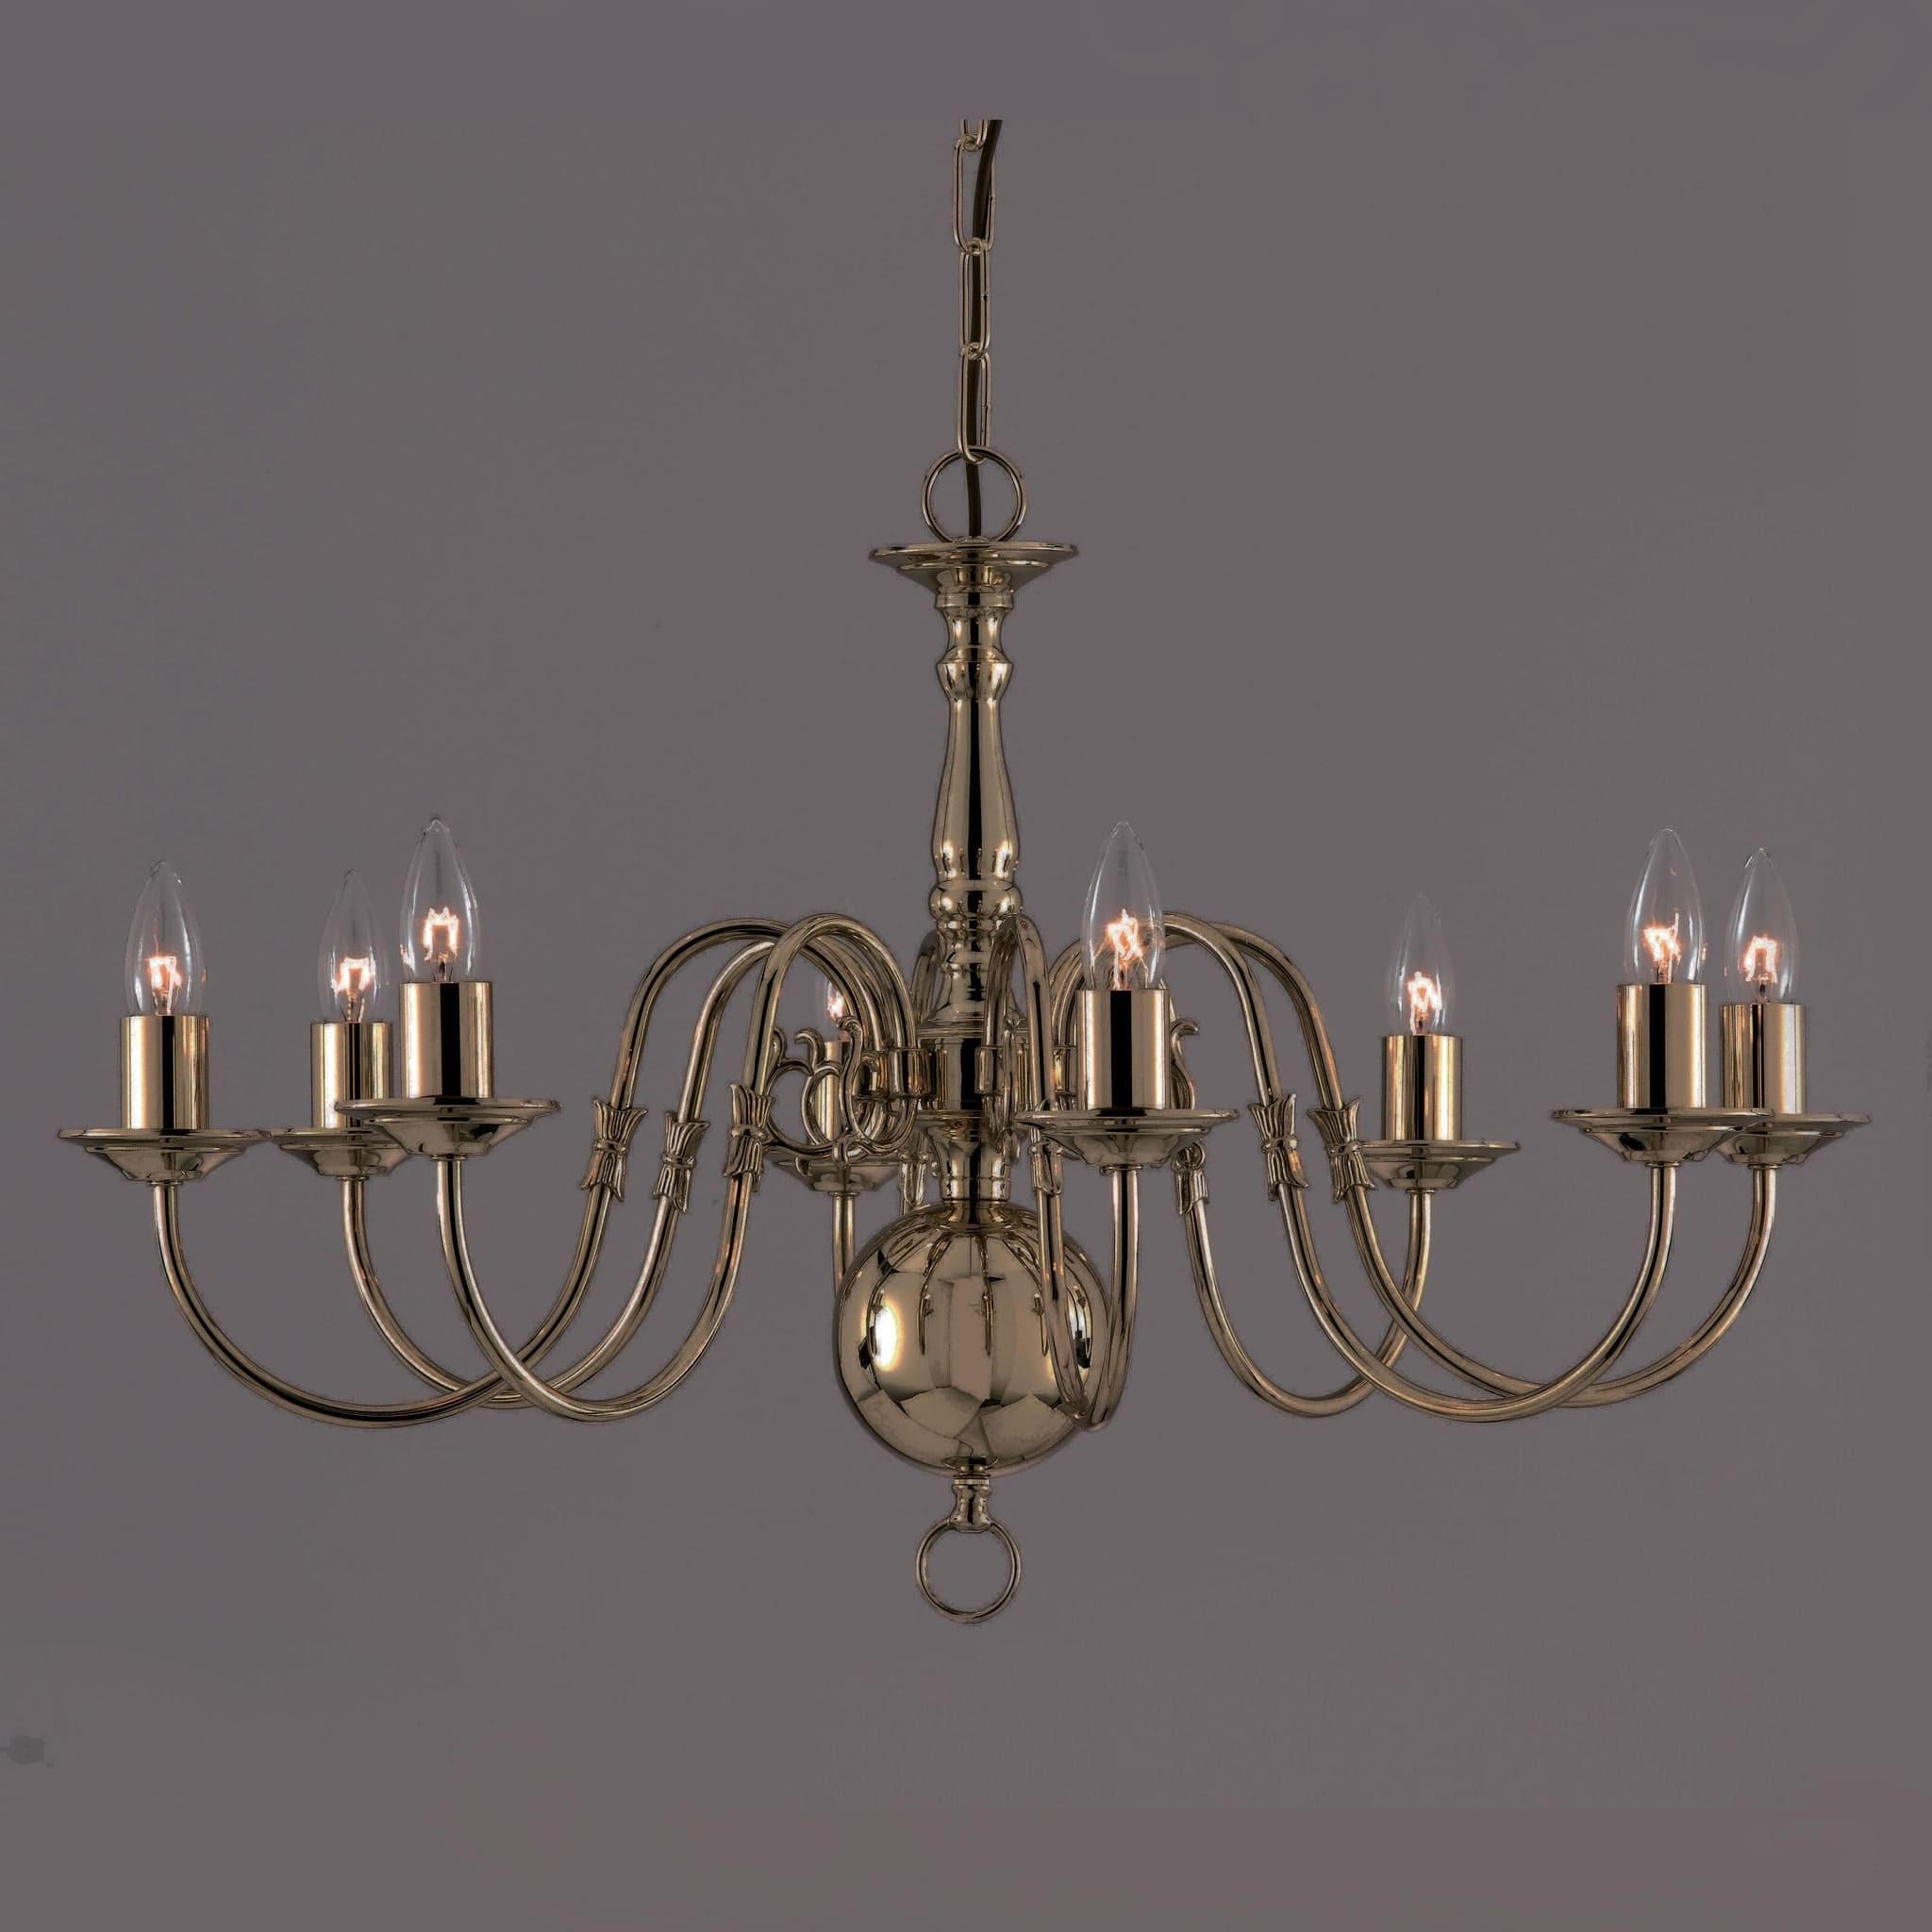 Chandelier Interesting Brass Chandelier Brass Chandelier Ebay Throughout Brass Chandeliers (Image 5 of 15)